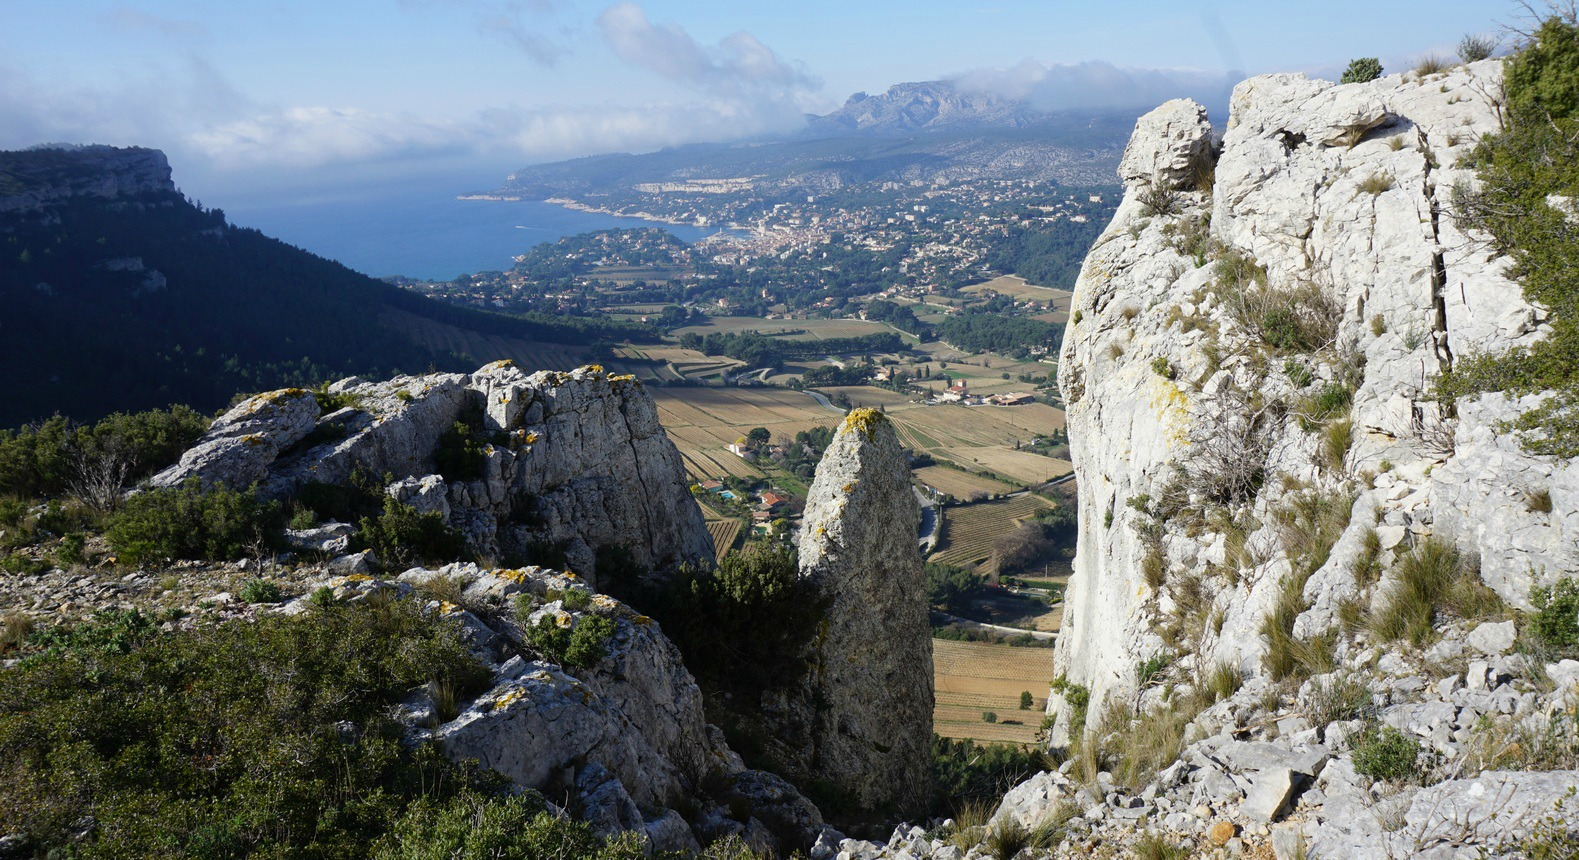 Cassis seen from GR51 near Couronne de Charlemagne